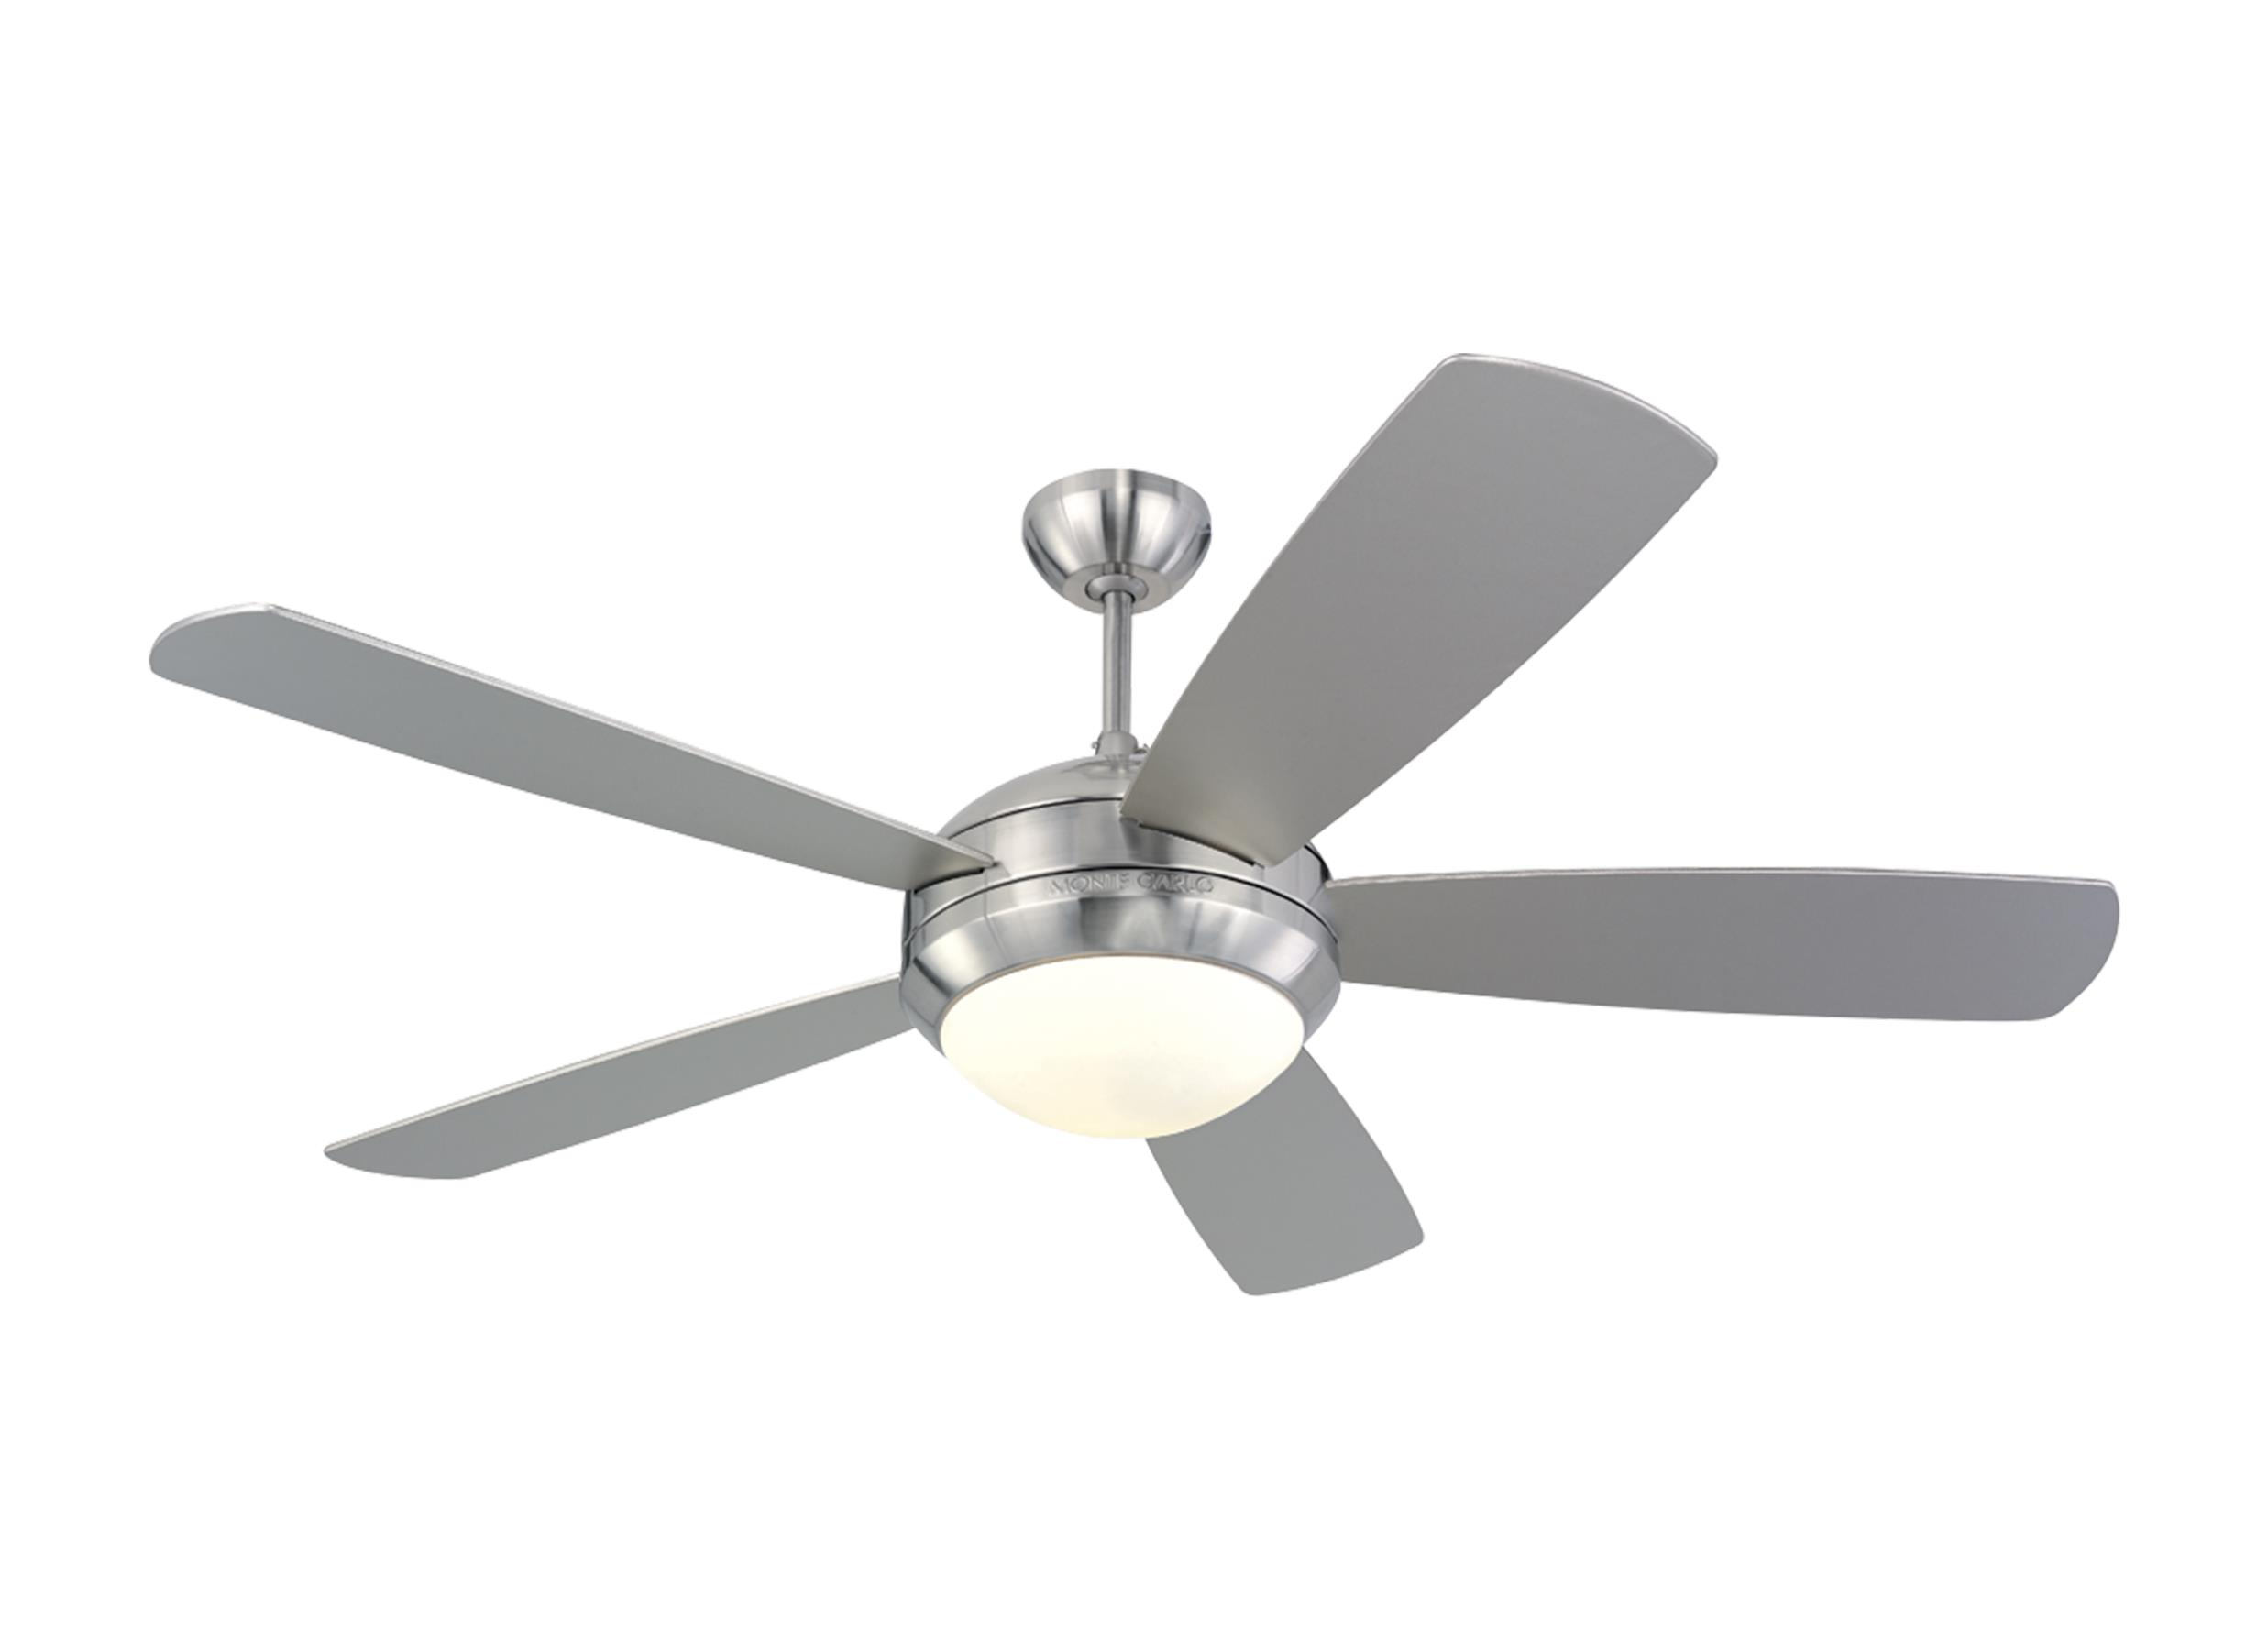 "5DI52BSD L 52"" Discus Fan Brushed Steel Brushed Steel"